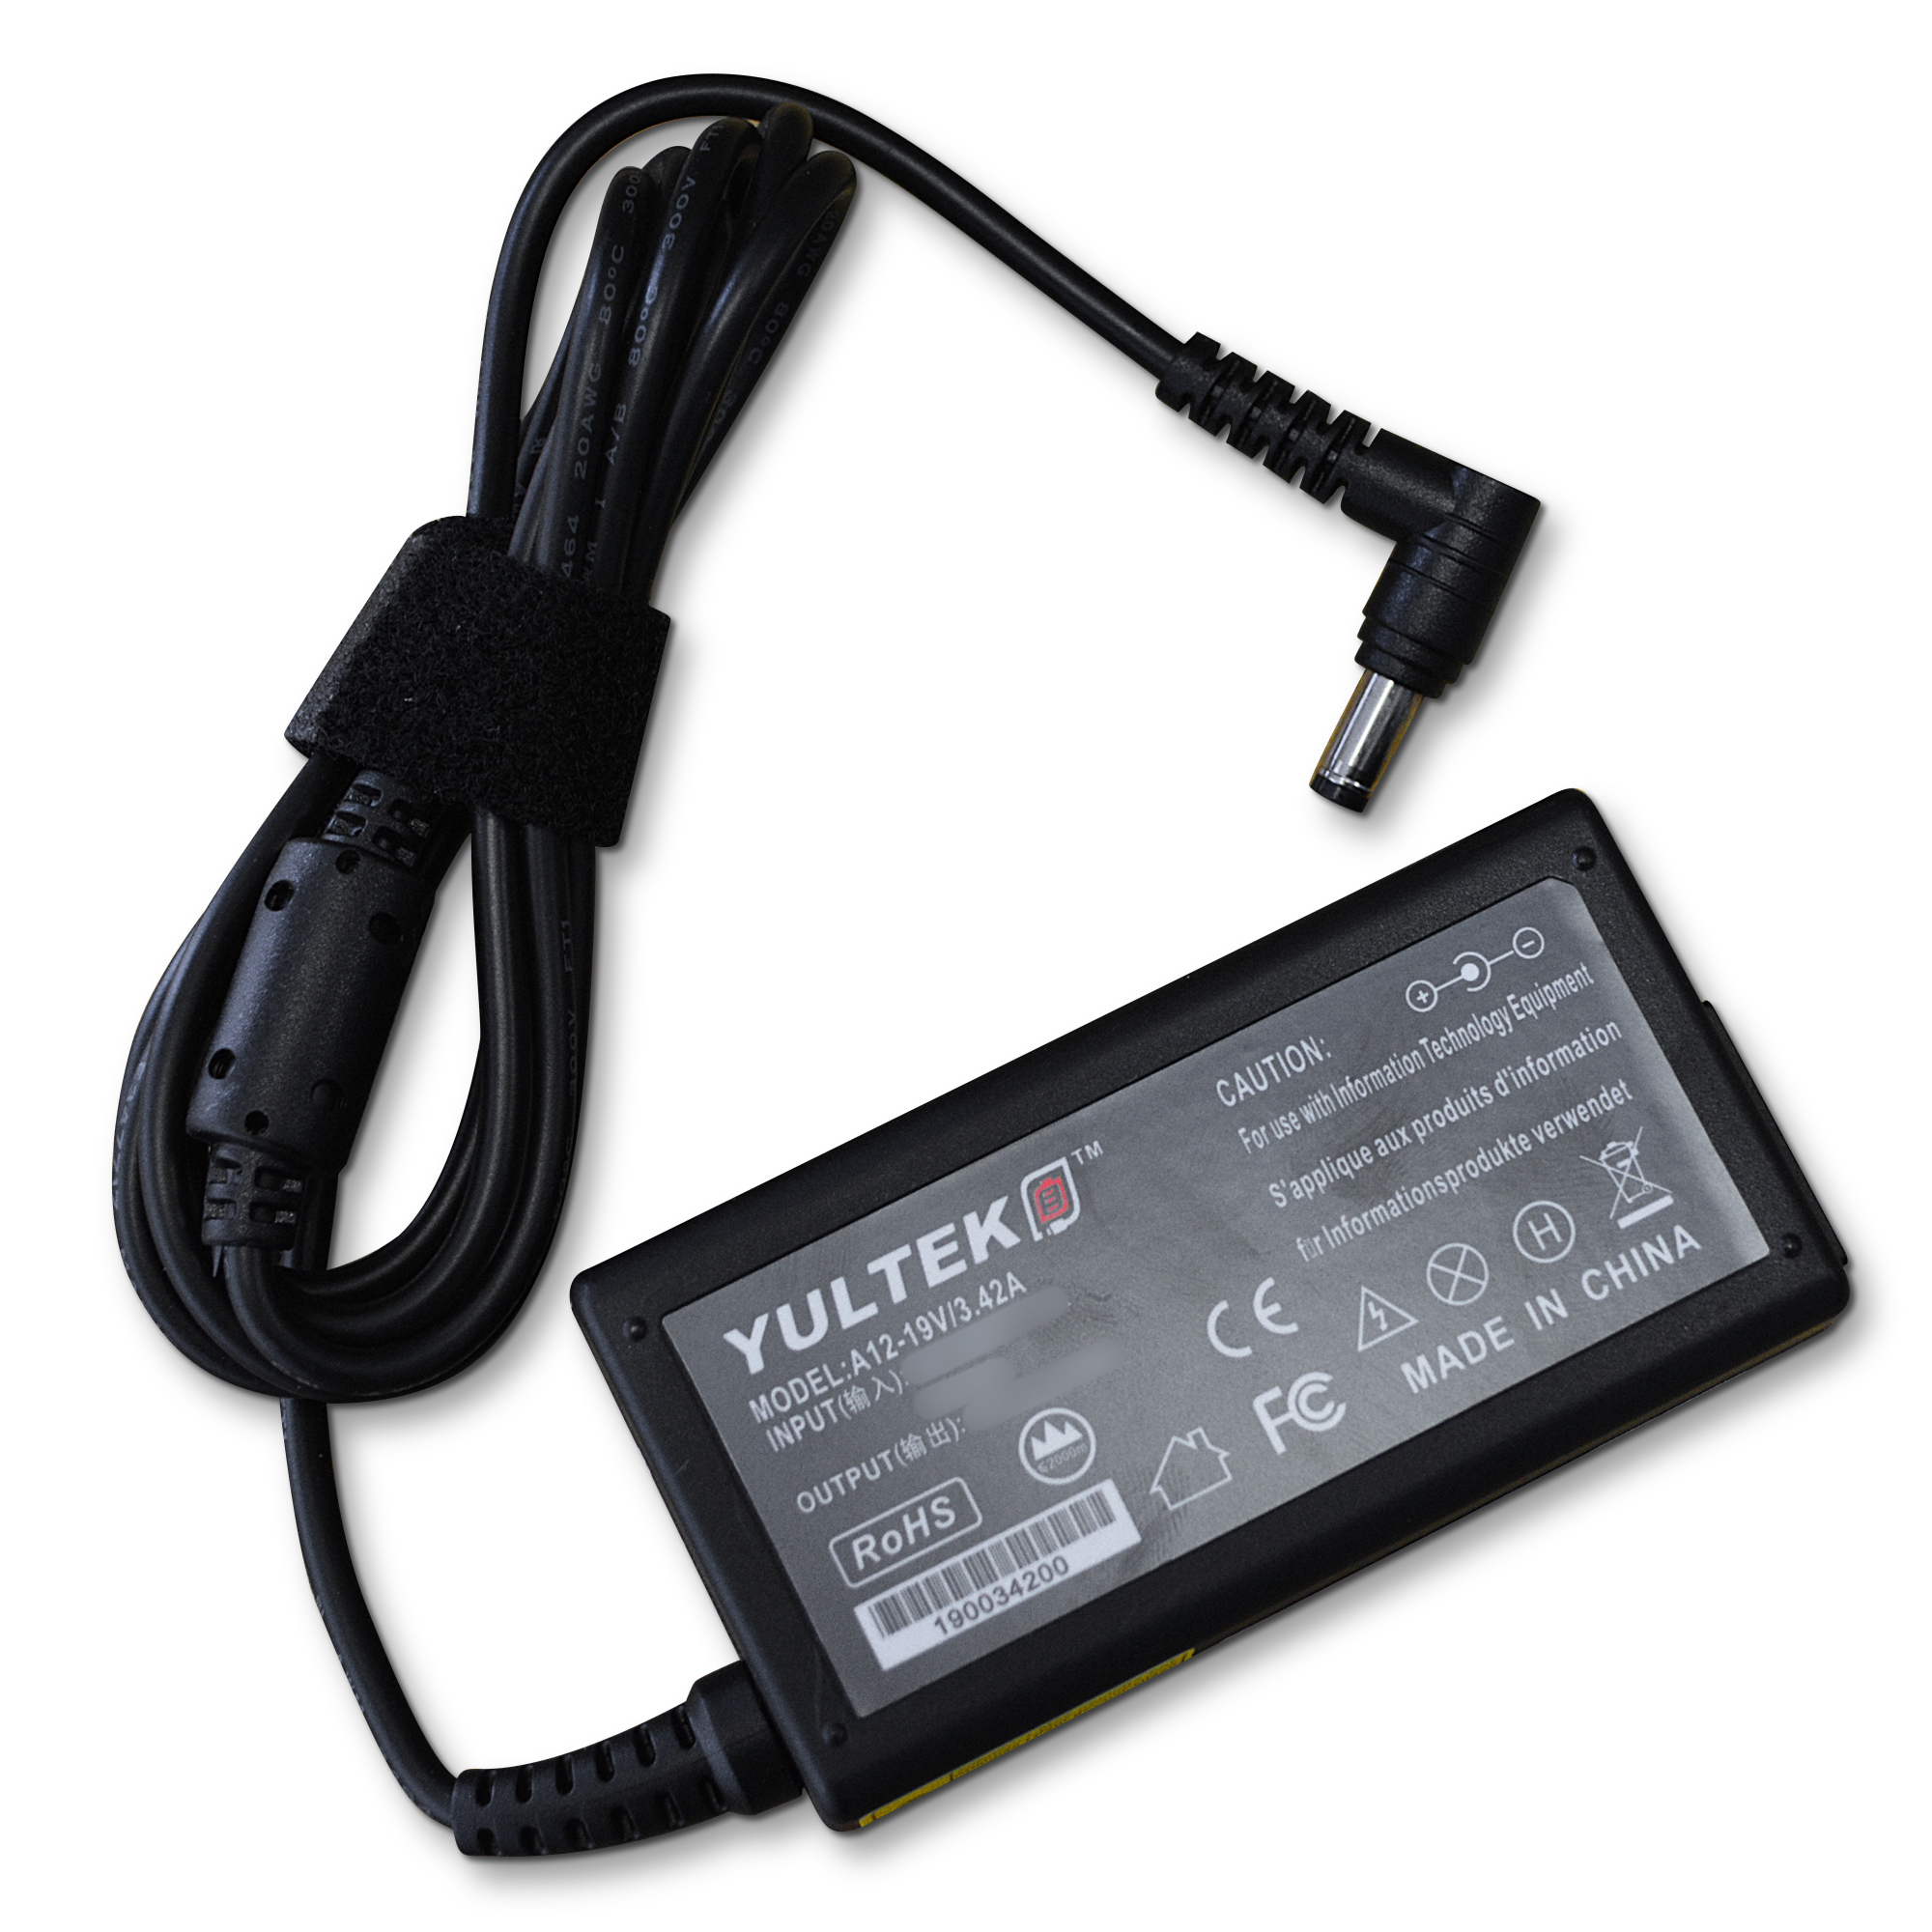 Fujitsu-Siemens Part Number UWL:76-01A651-5A Laptop Charger